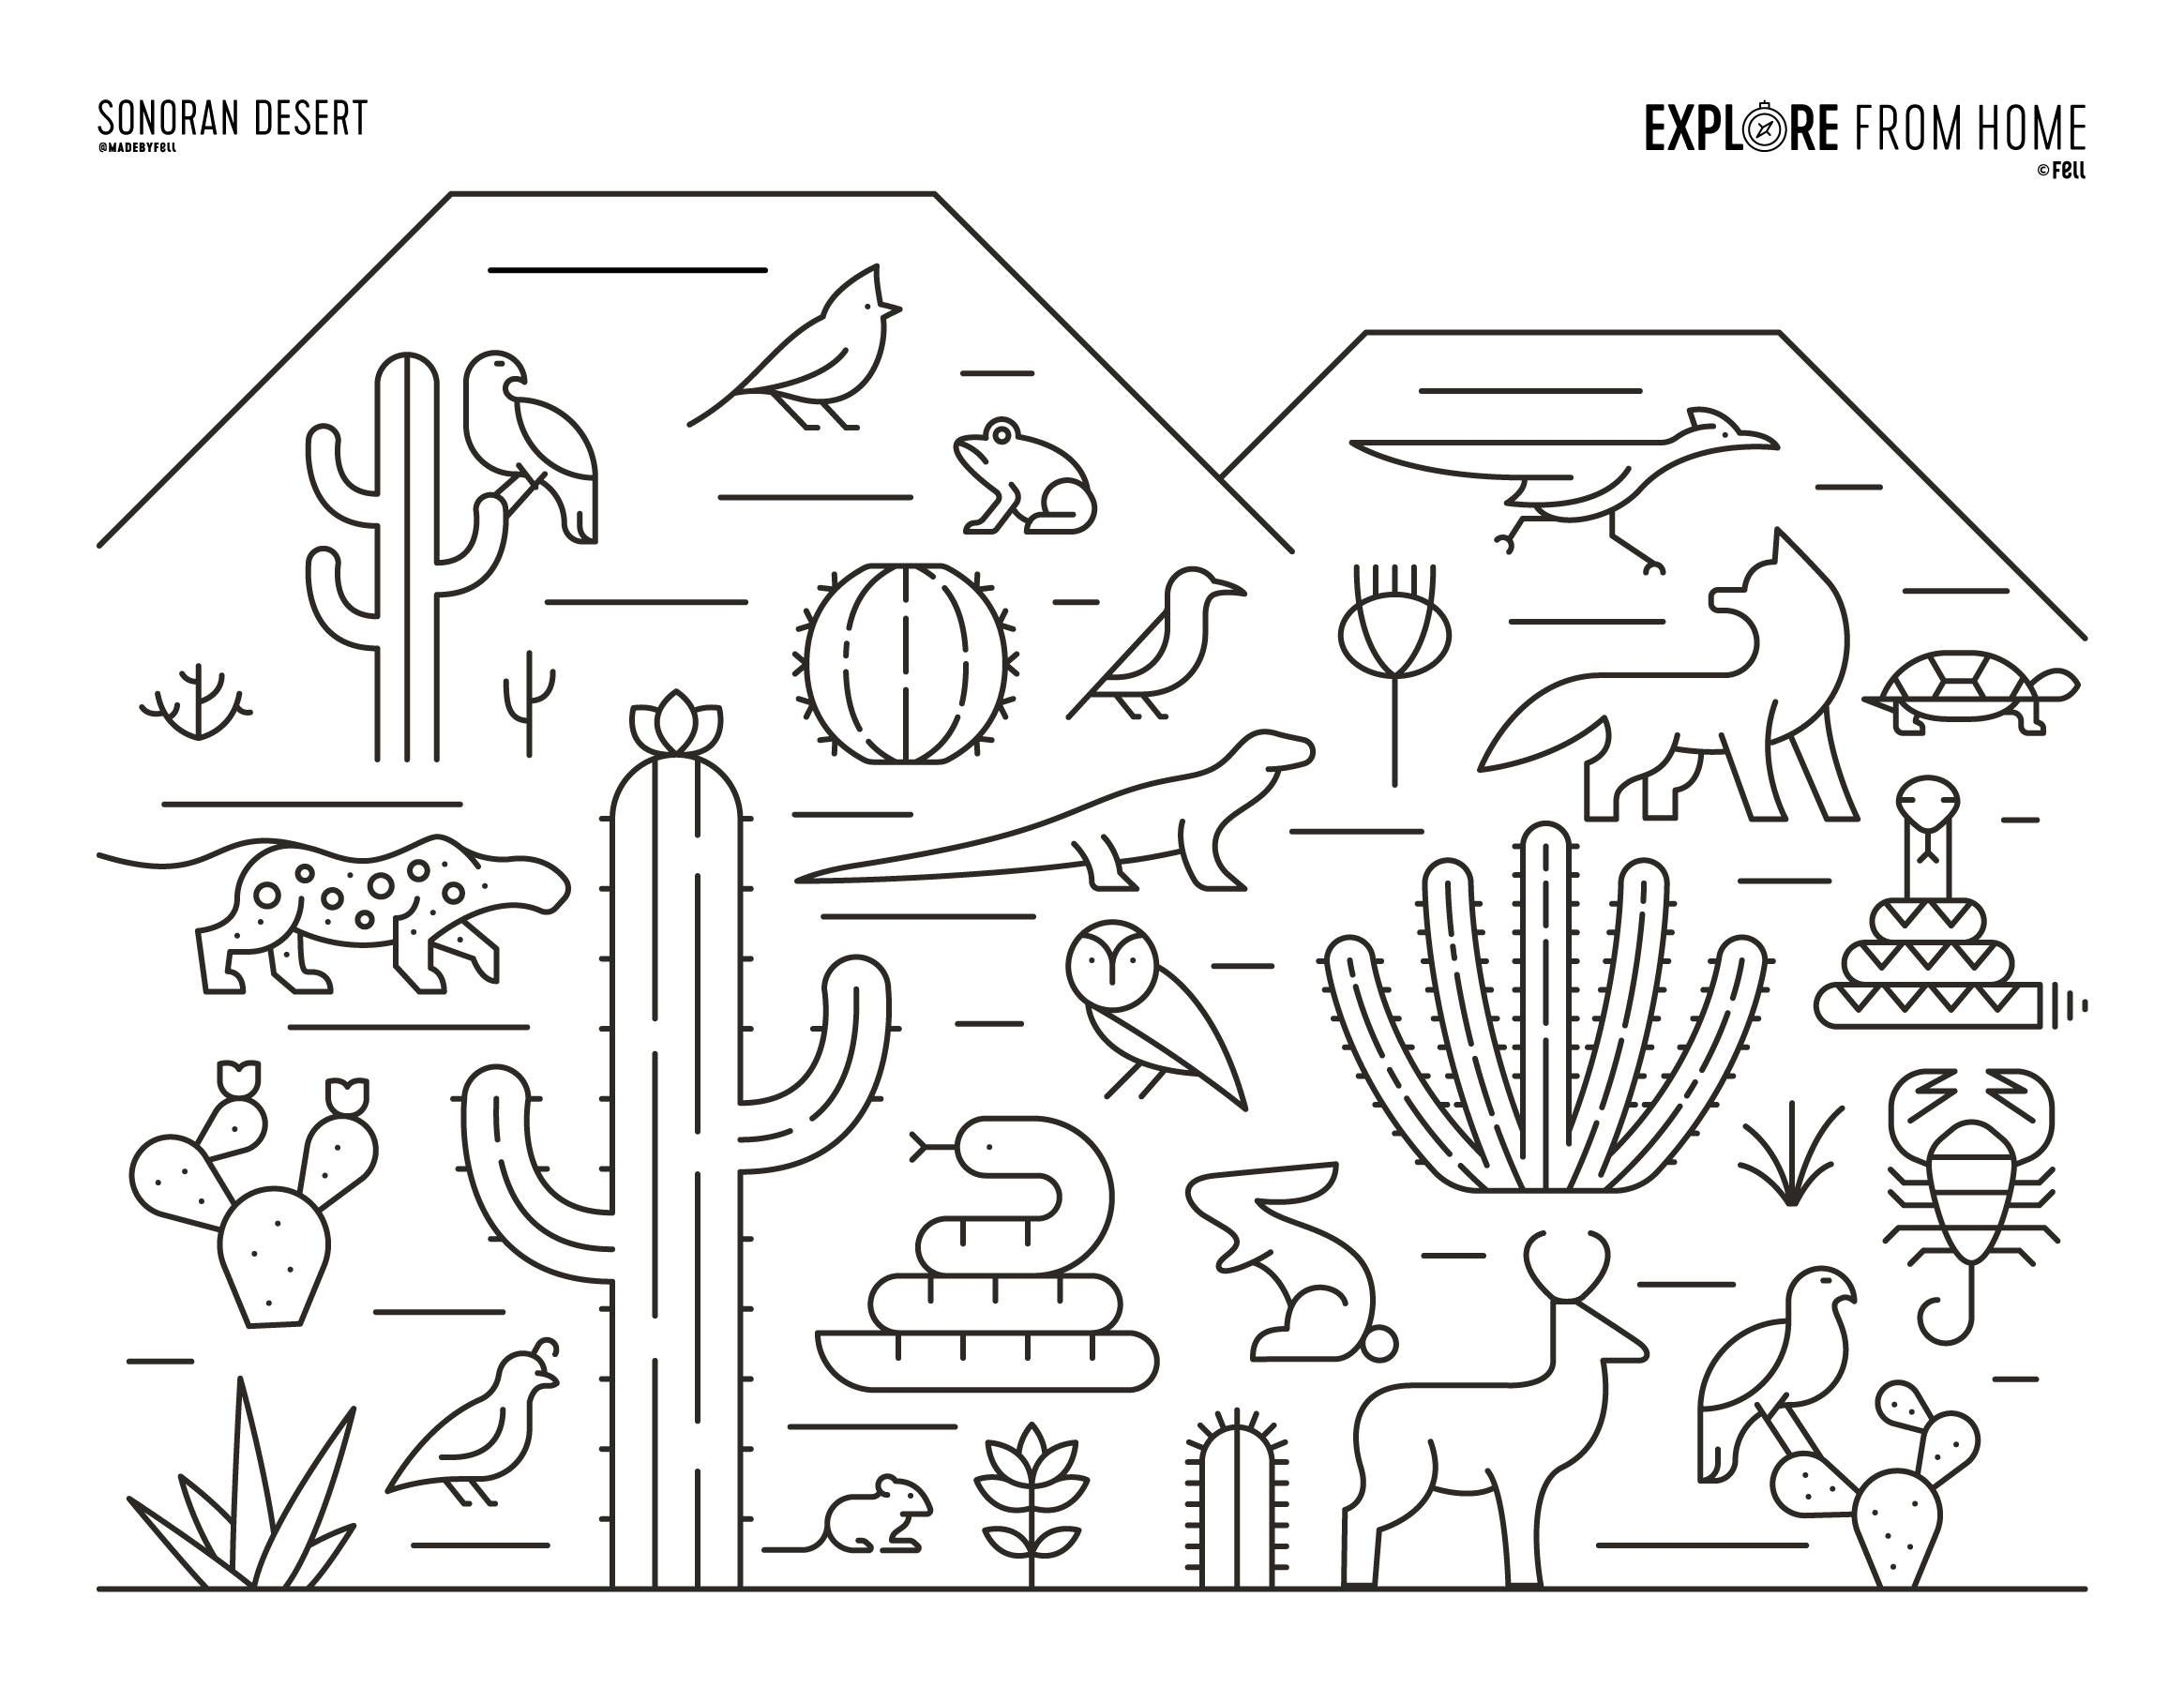 small resolution of Biomes Sonoran Desert Coloring Page   Coloring pages